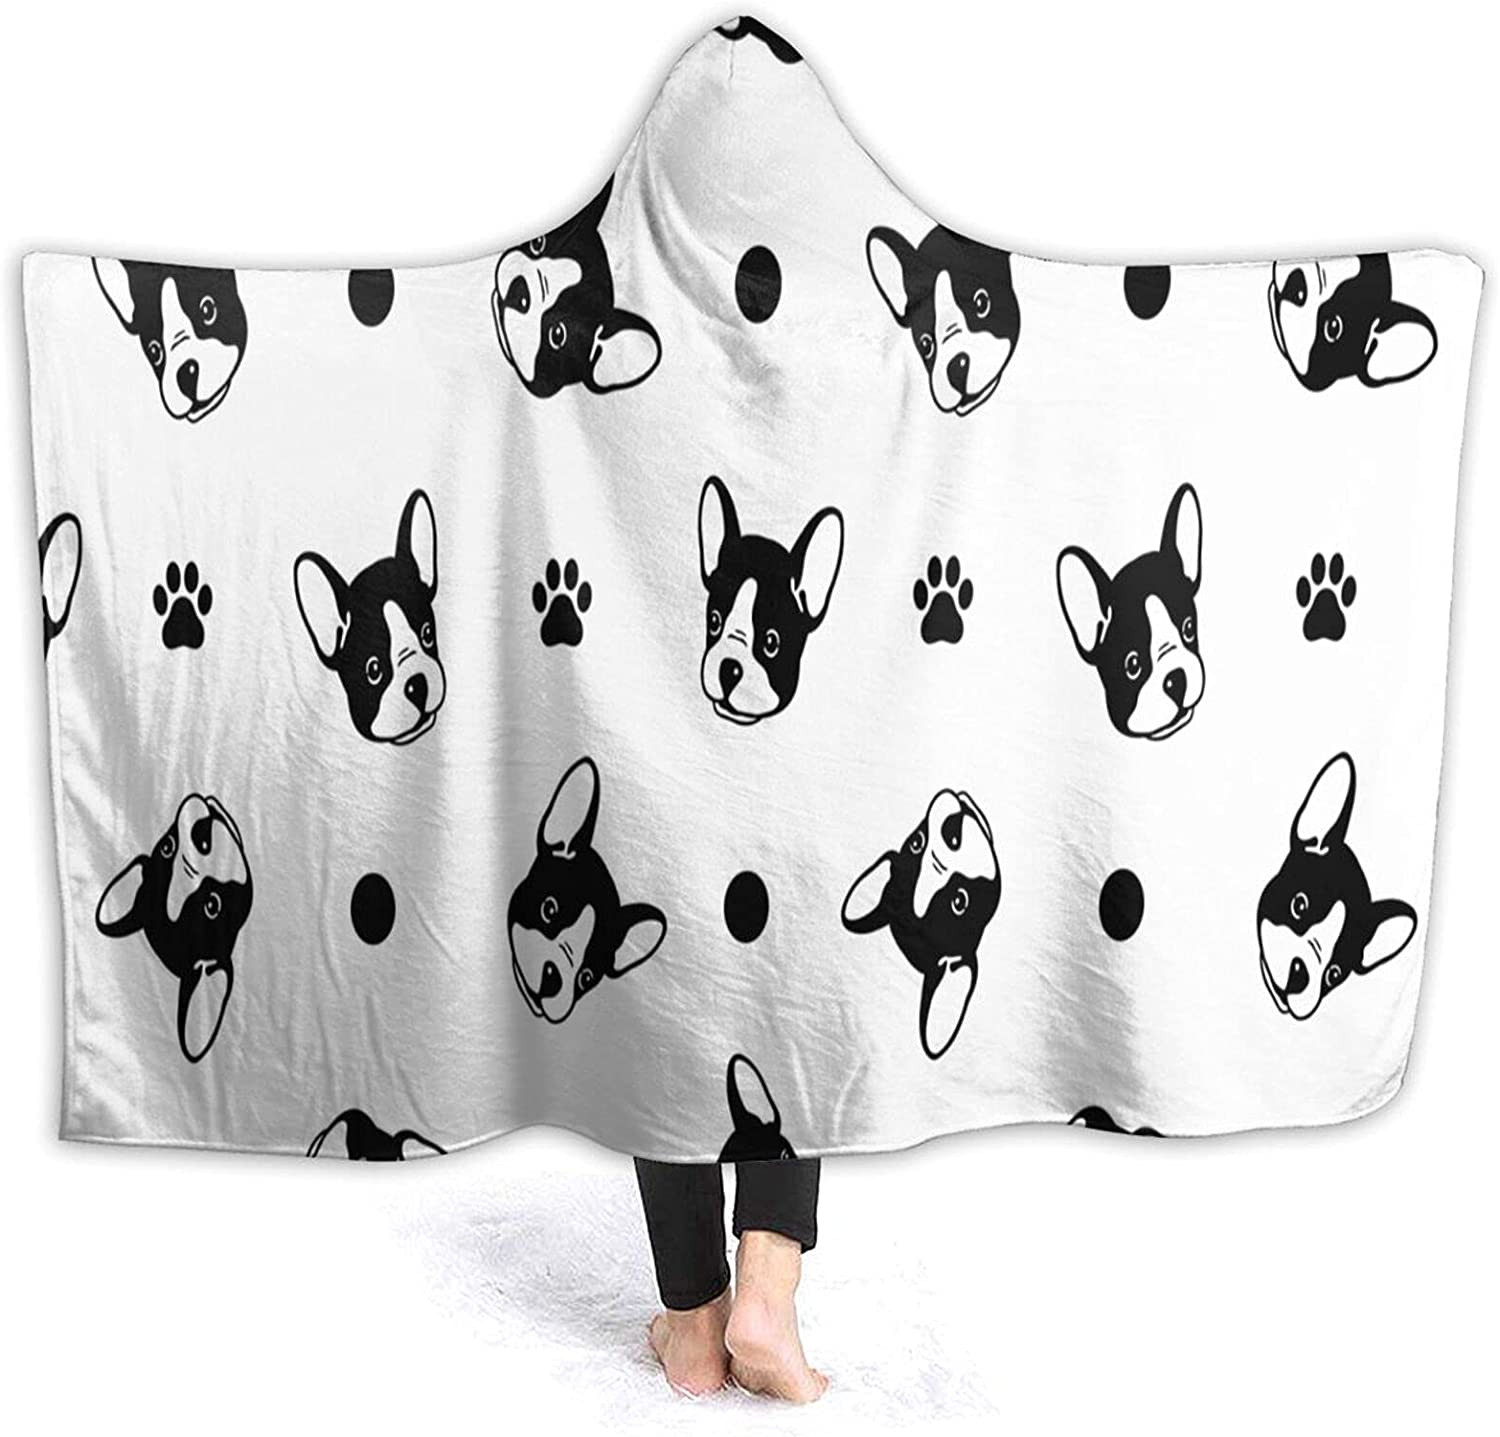 Hooded Blanket Boston Terrier for Paw Cartoon Dog Max 59% OFF Super intense SALE